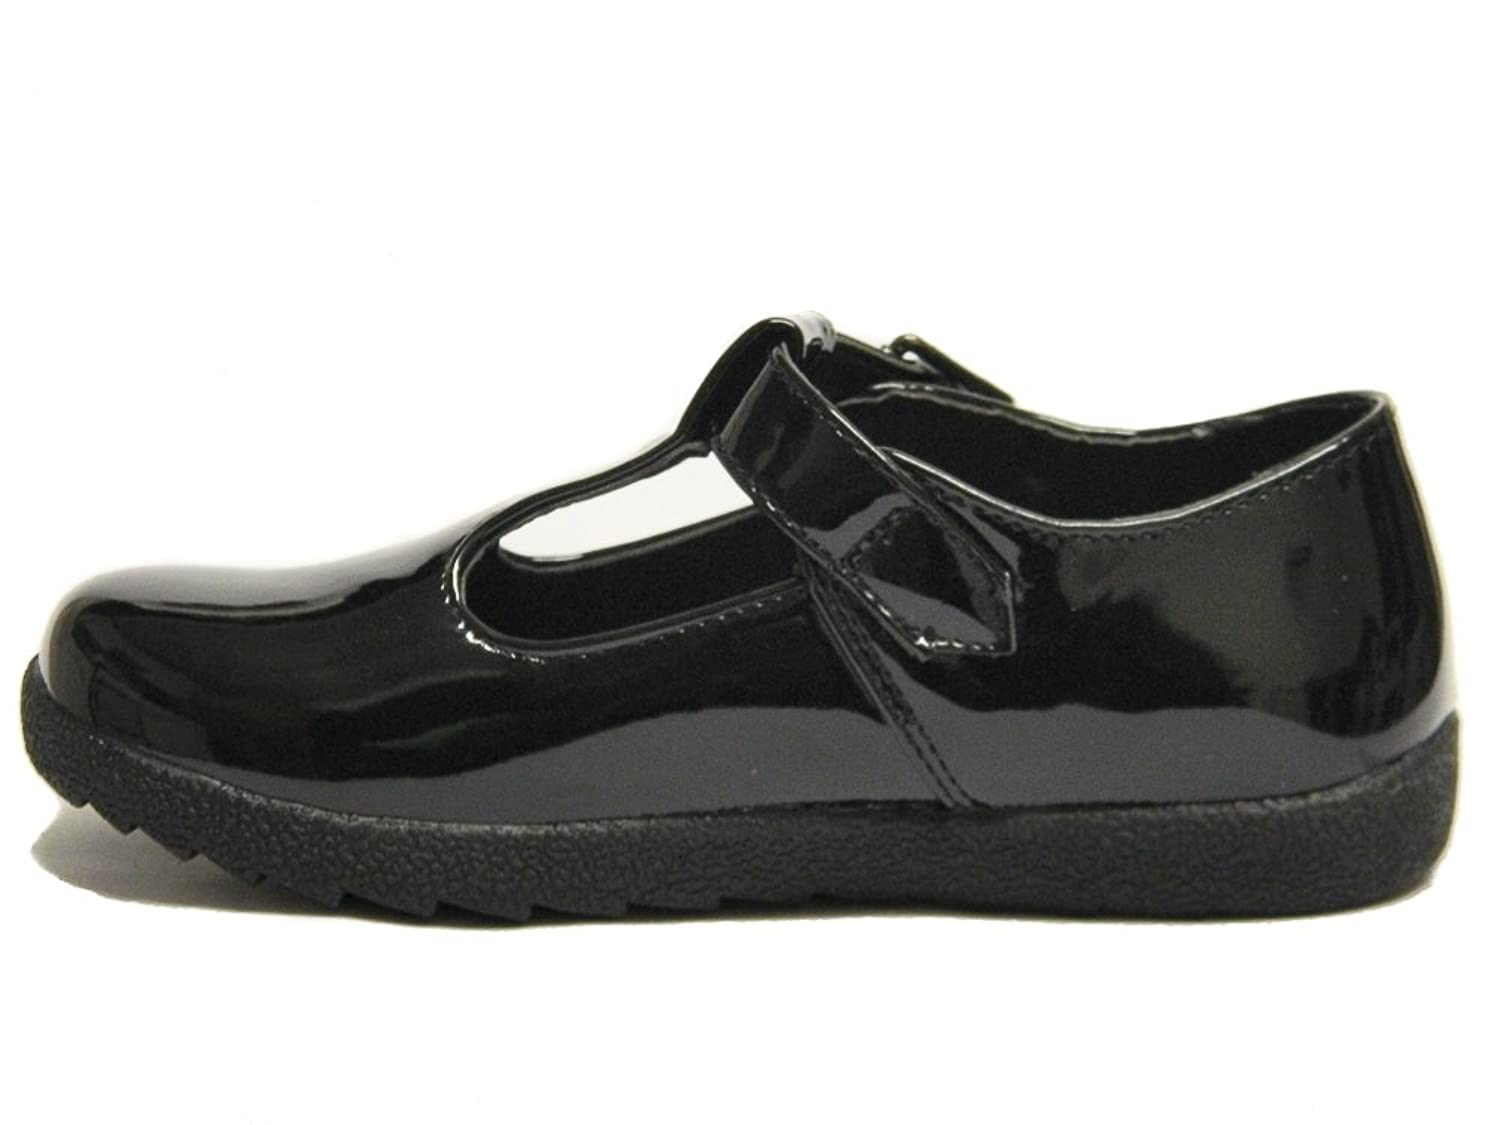 Girls Black patent school T bar formal Party shoes UK Older Kids Size 10 - 5:  Amazon.co.uk: Shoes & Bags